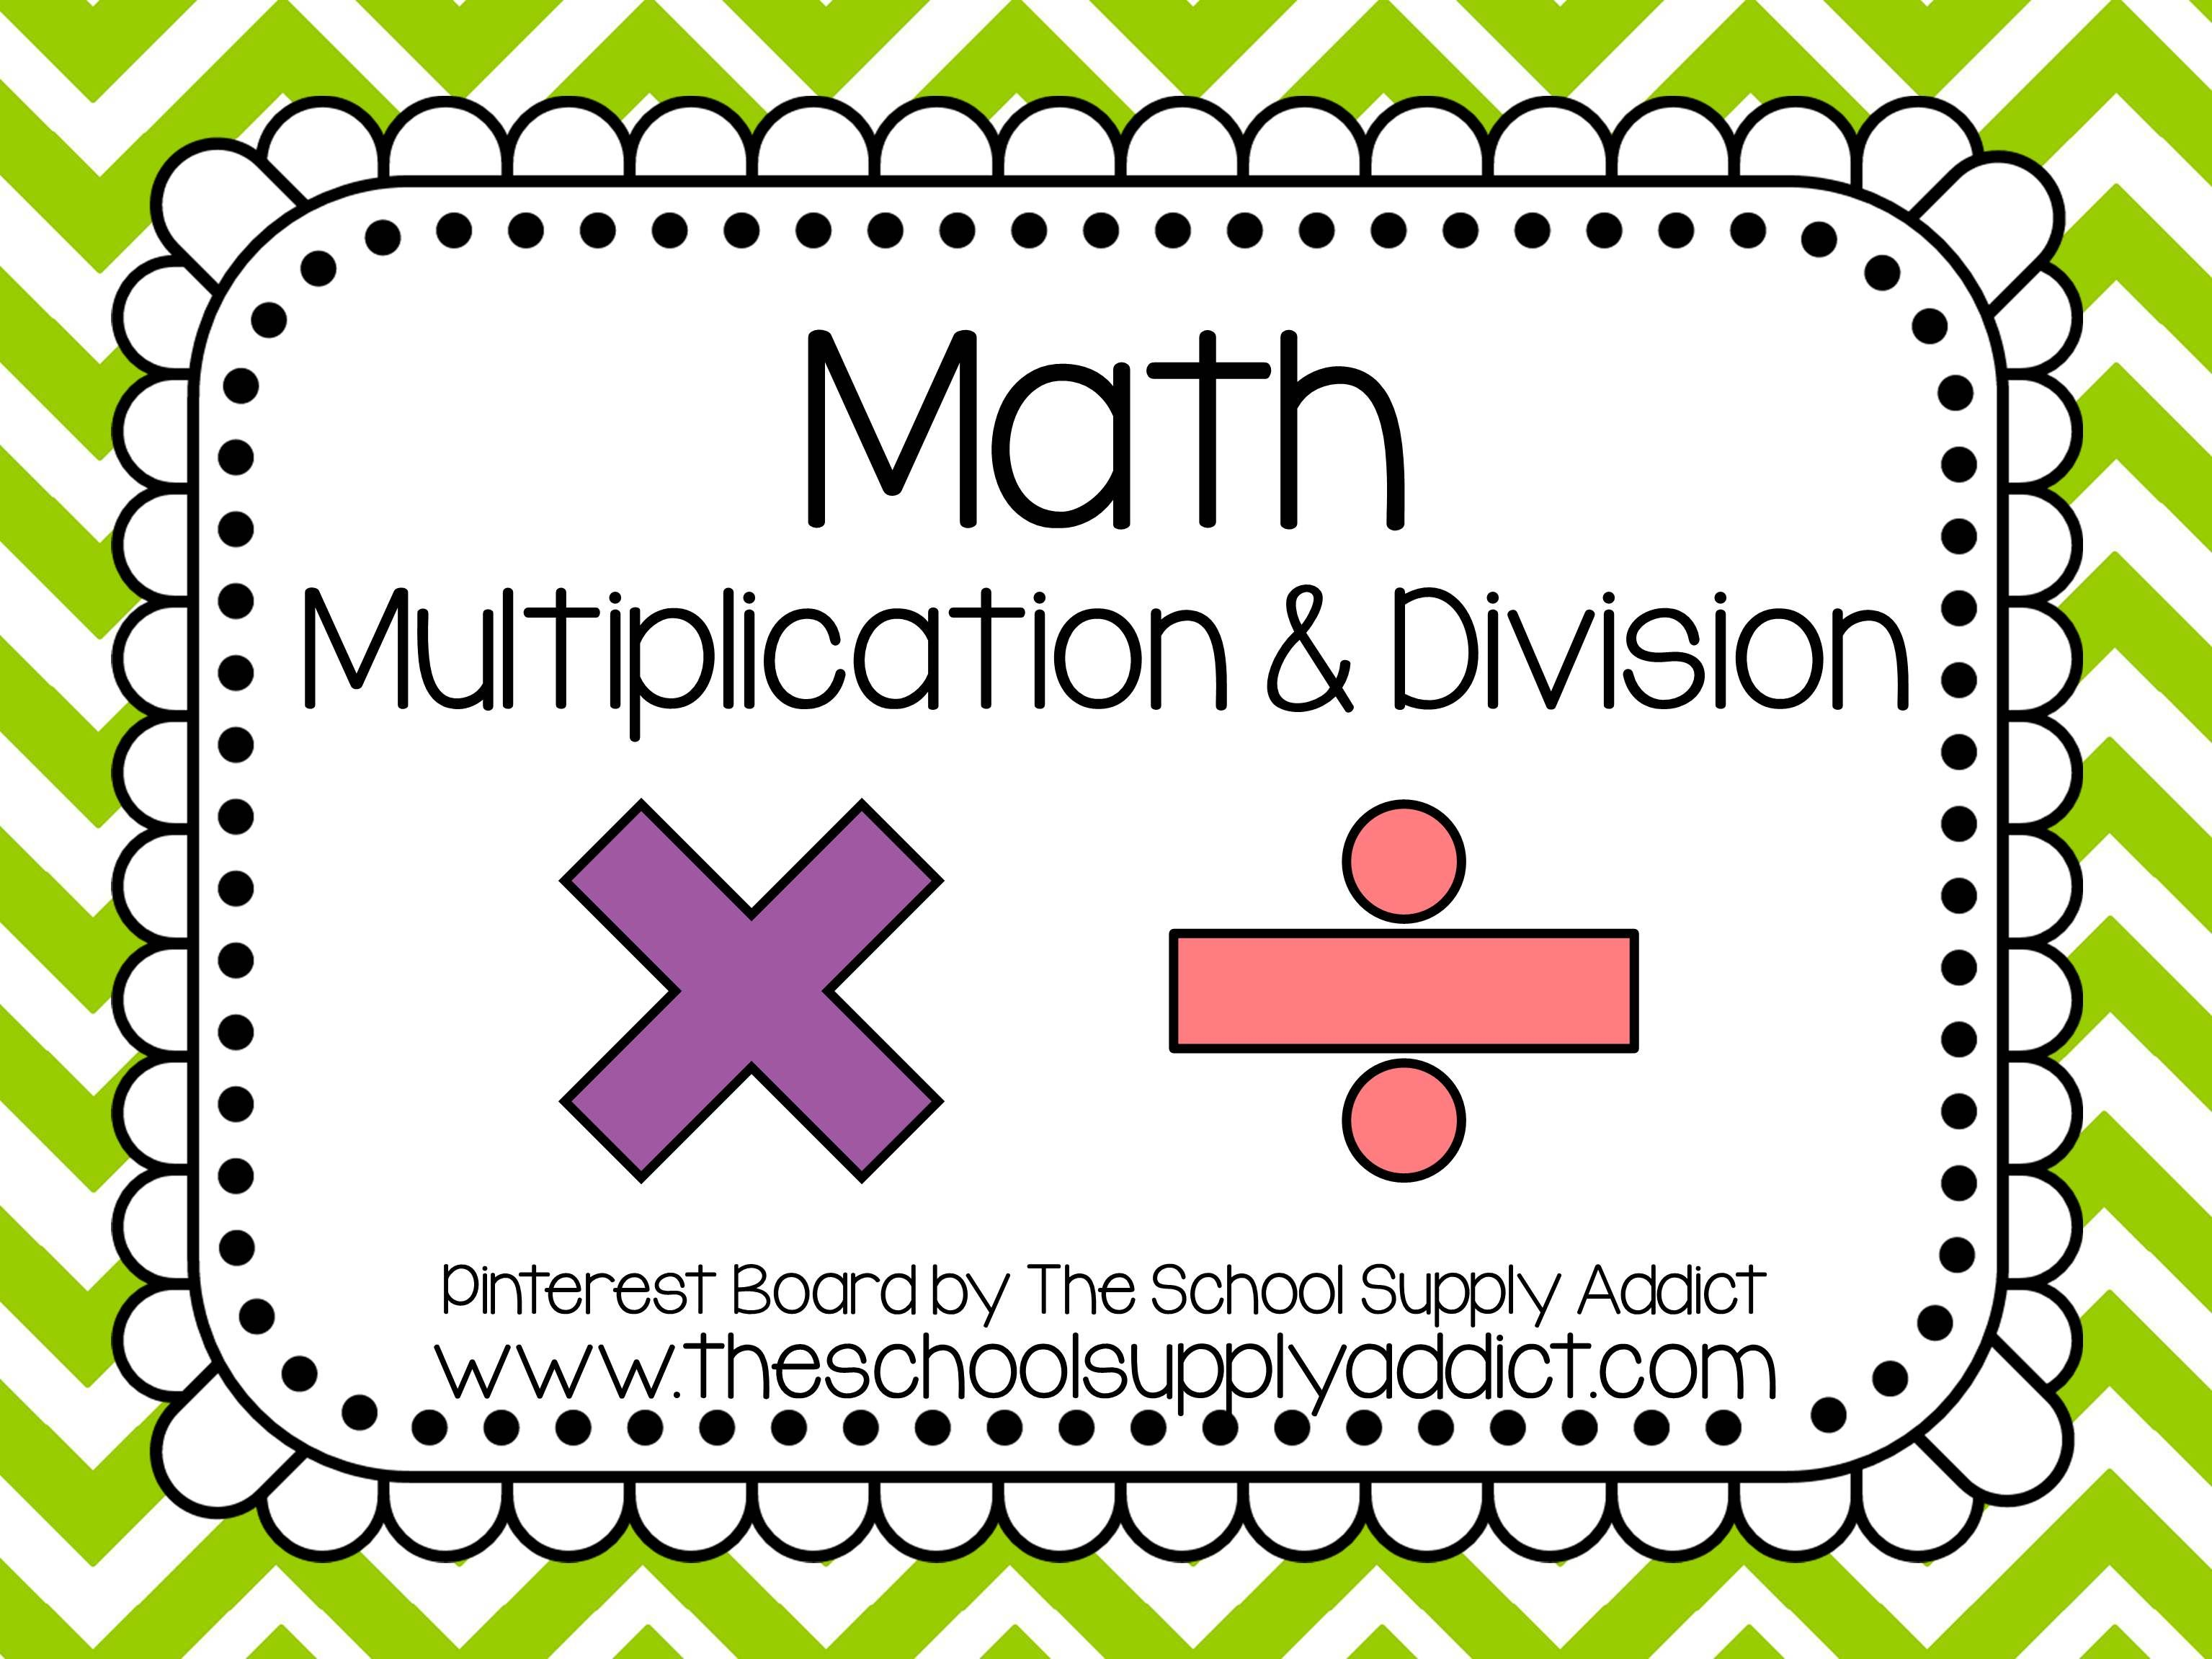 Multiplication Amp Division Pin Board By The School Supply